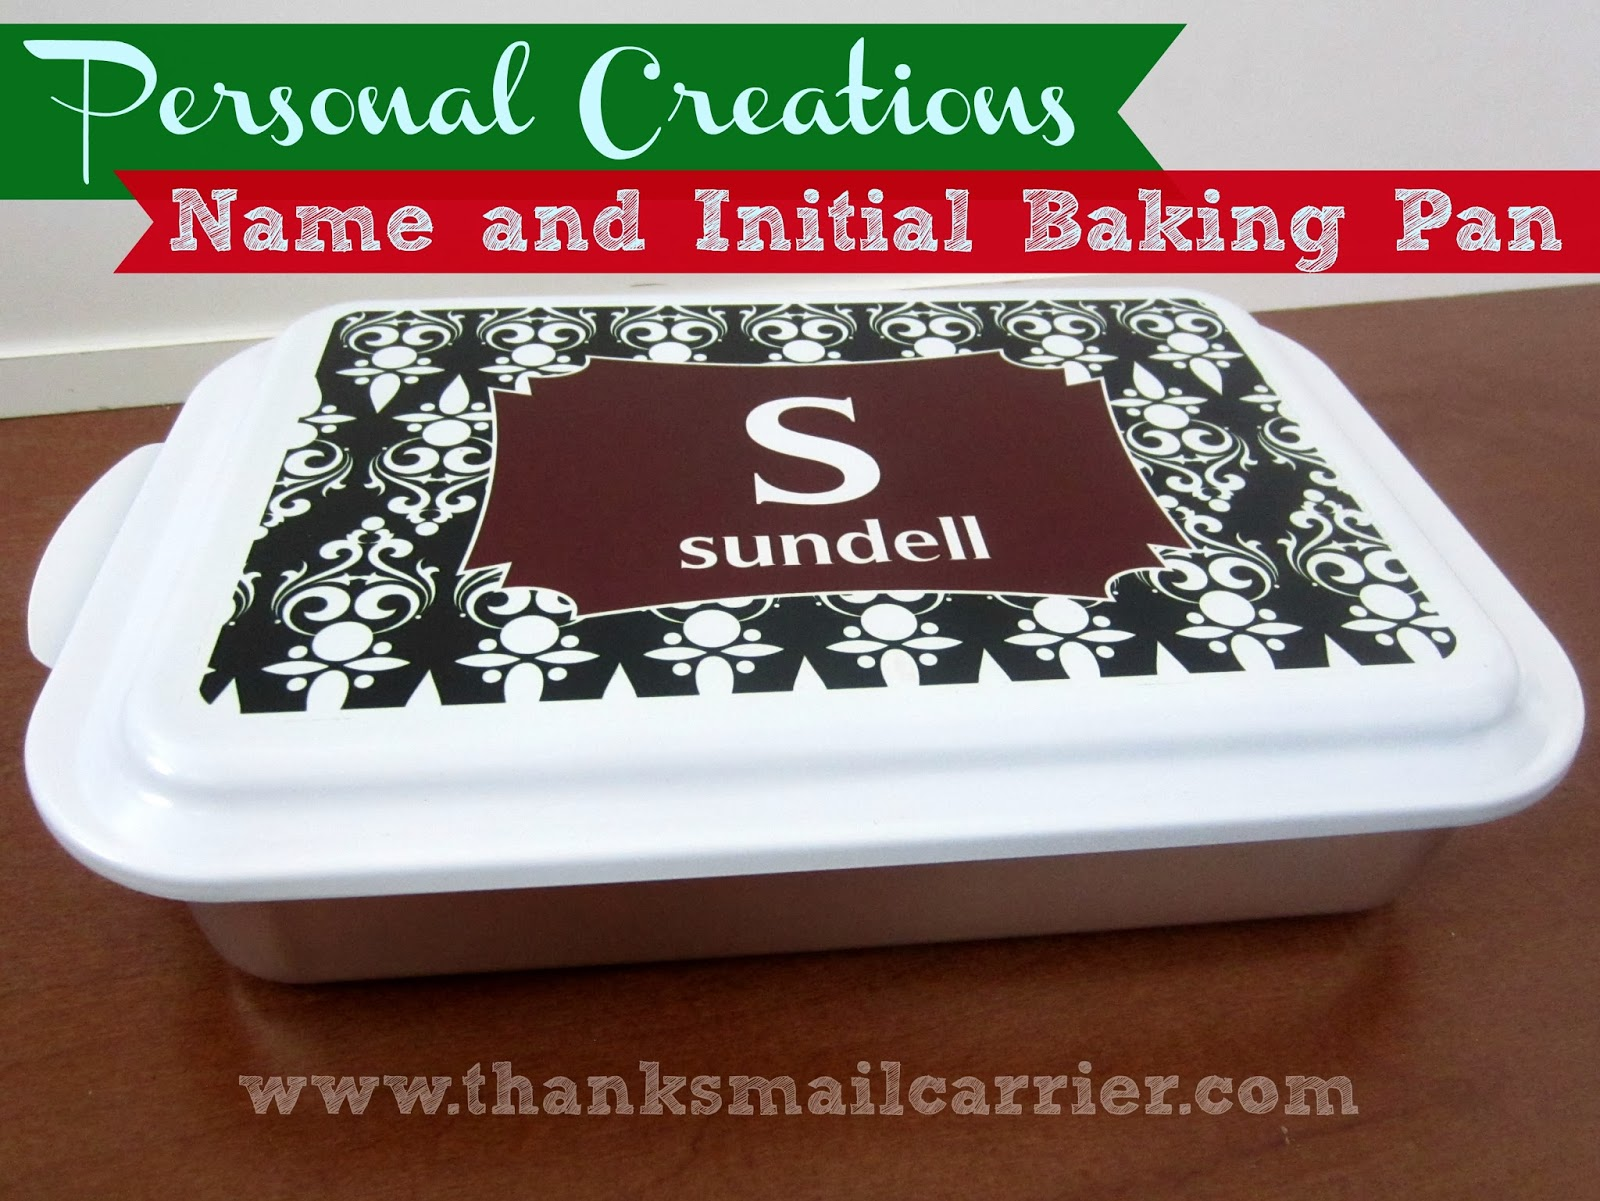 Name and Initial Baking Pan